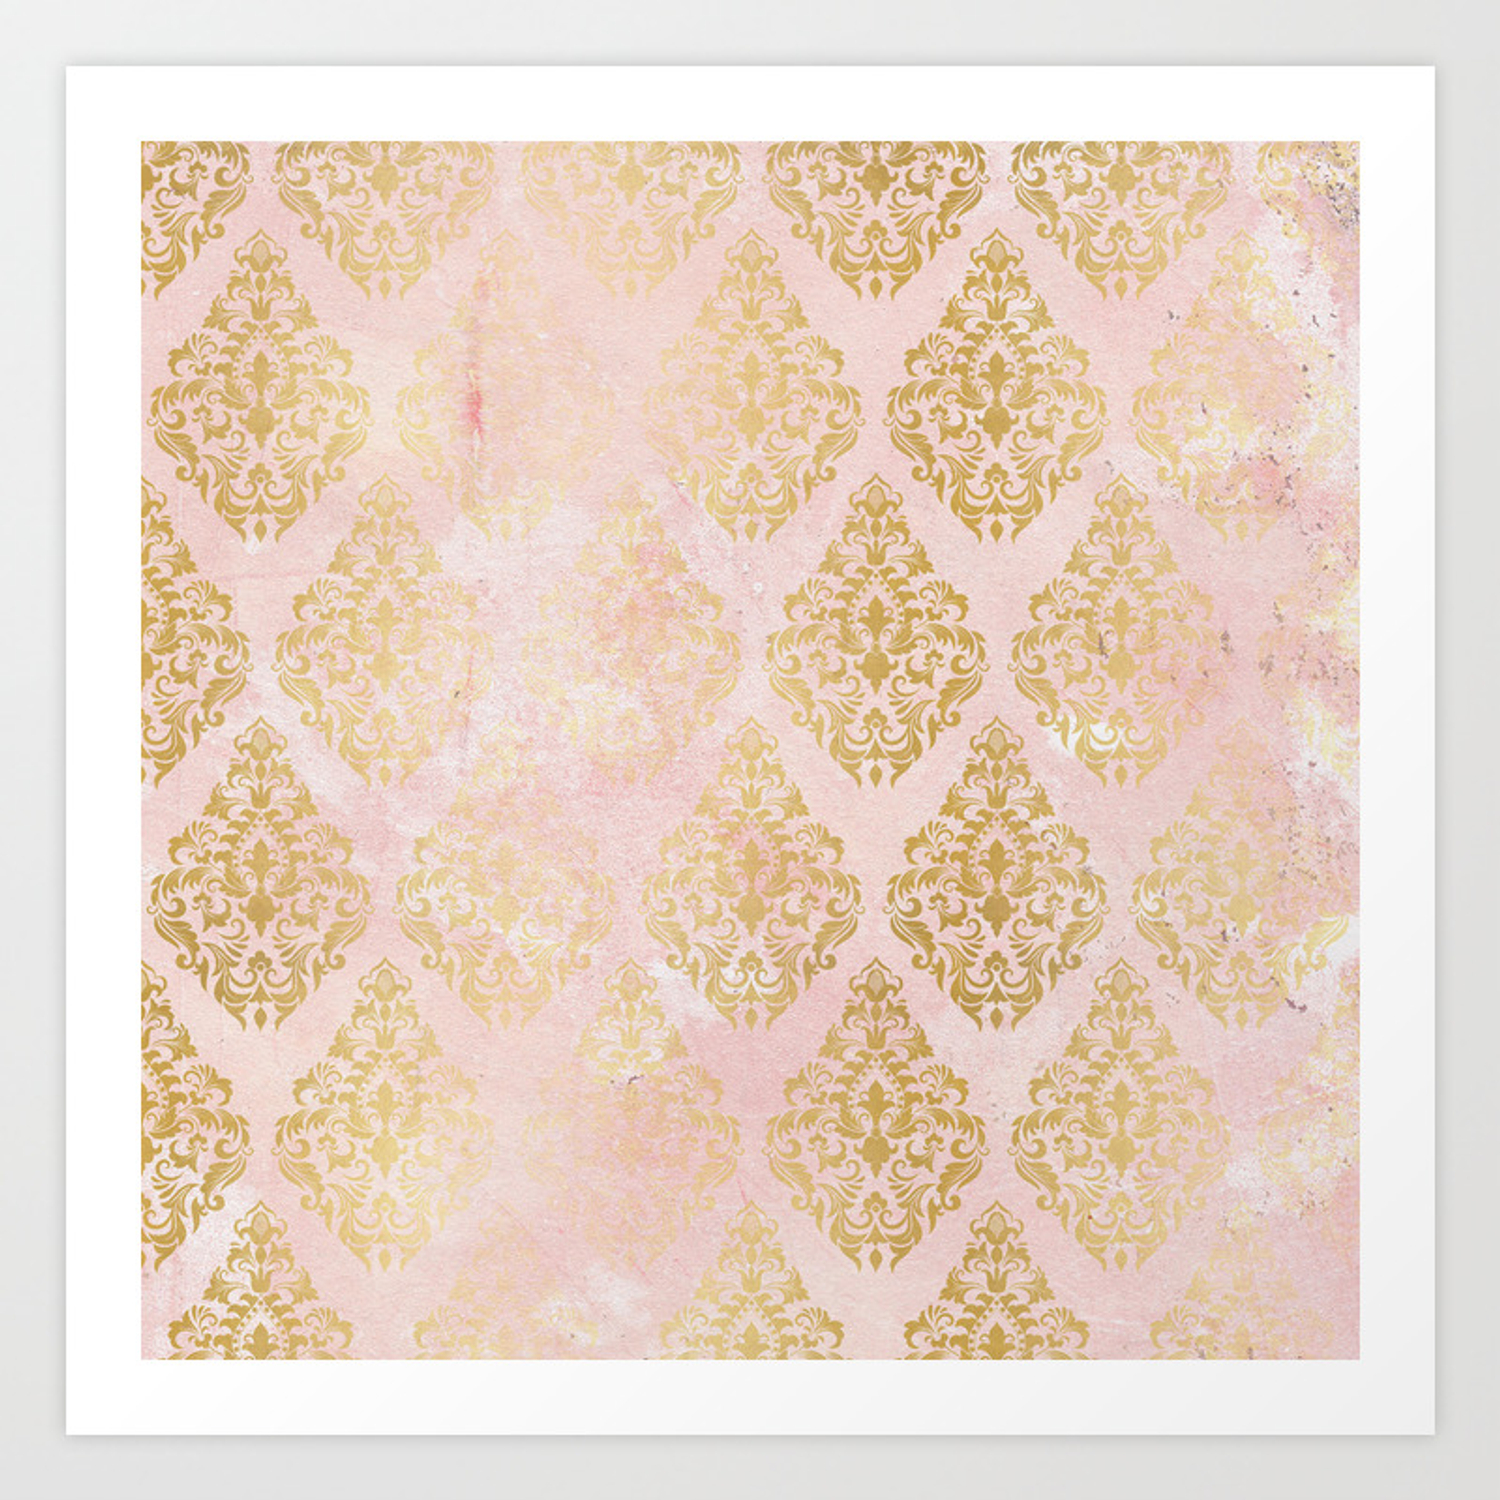 Floral Gold Leaf Diamond Arabesque On Pink Art Print By